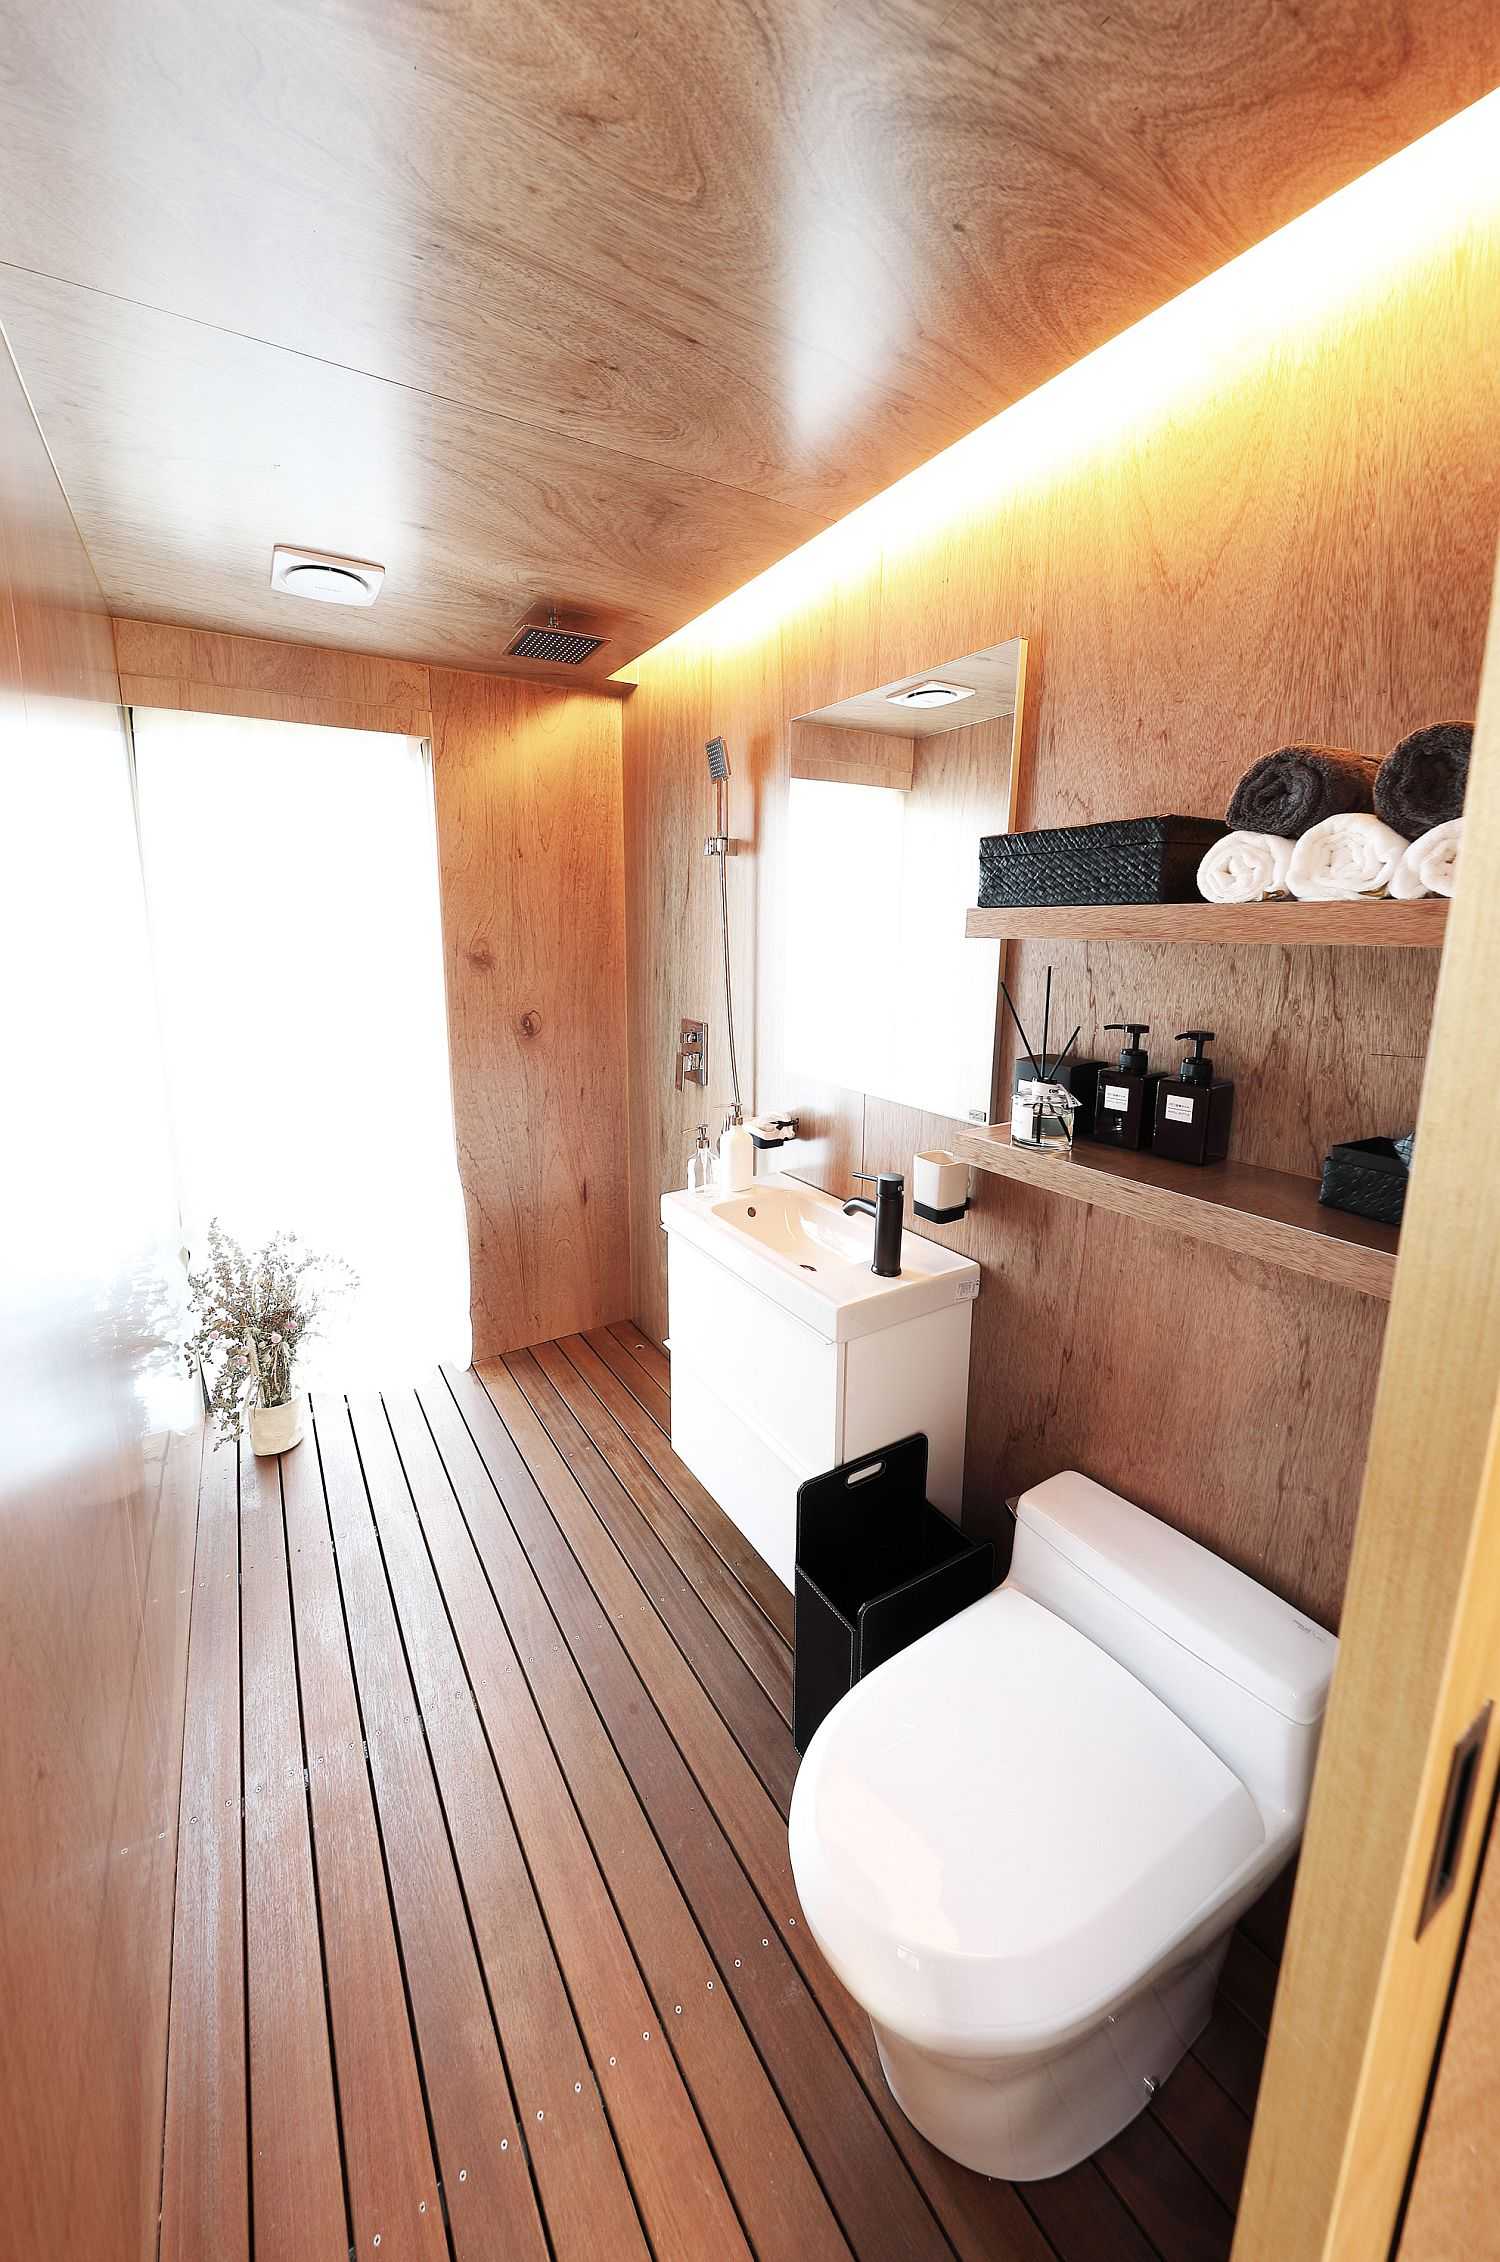 Wood bathroom with a pinch of white brought in by toilet fixtures